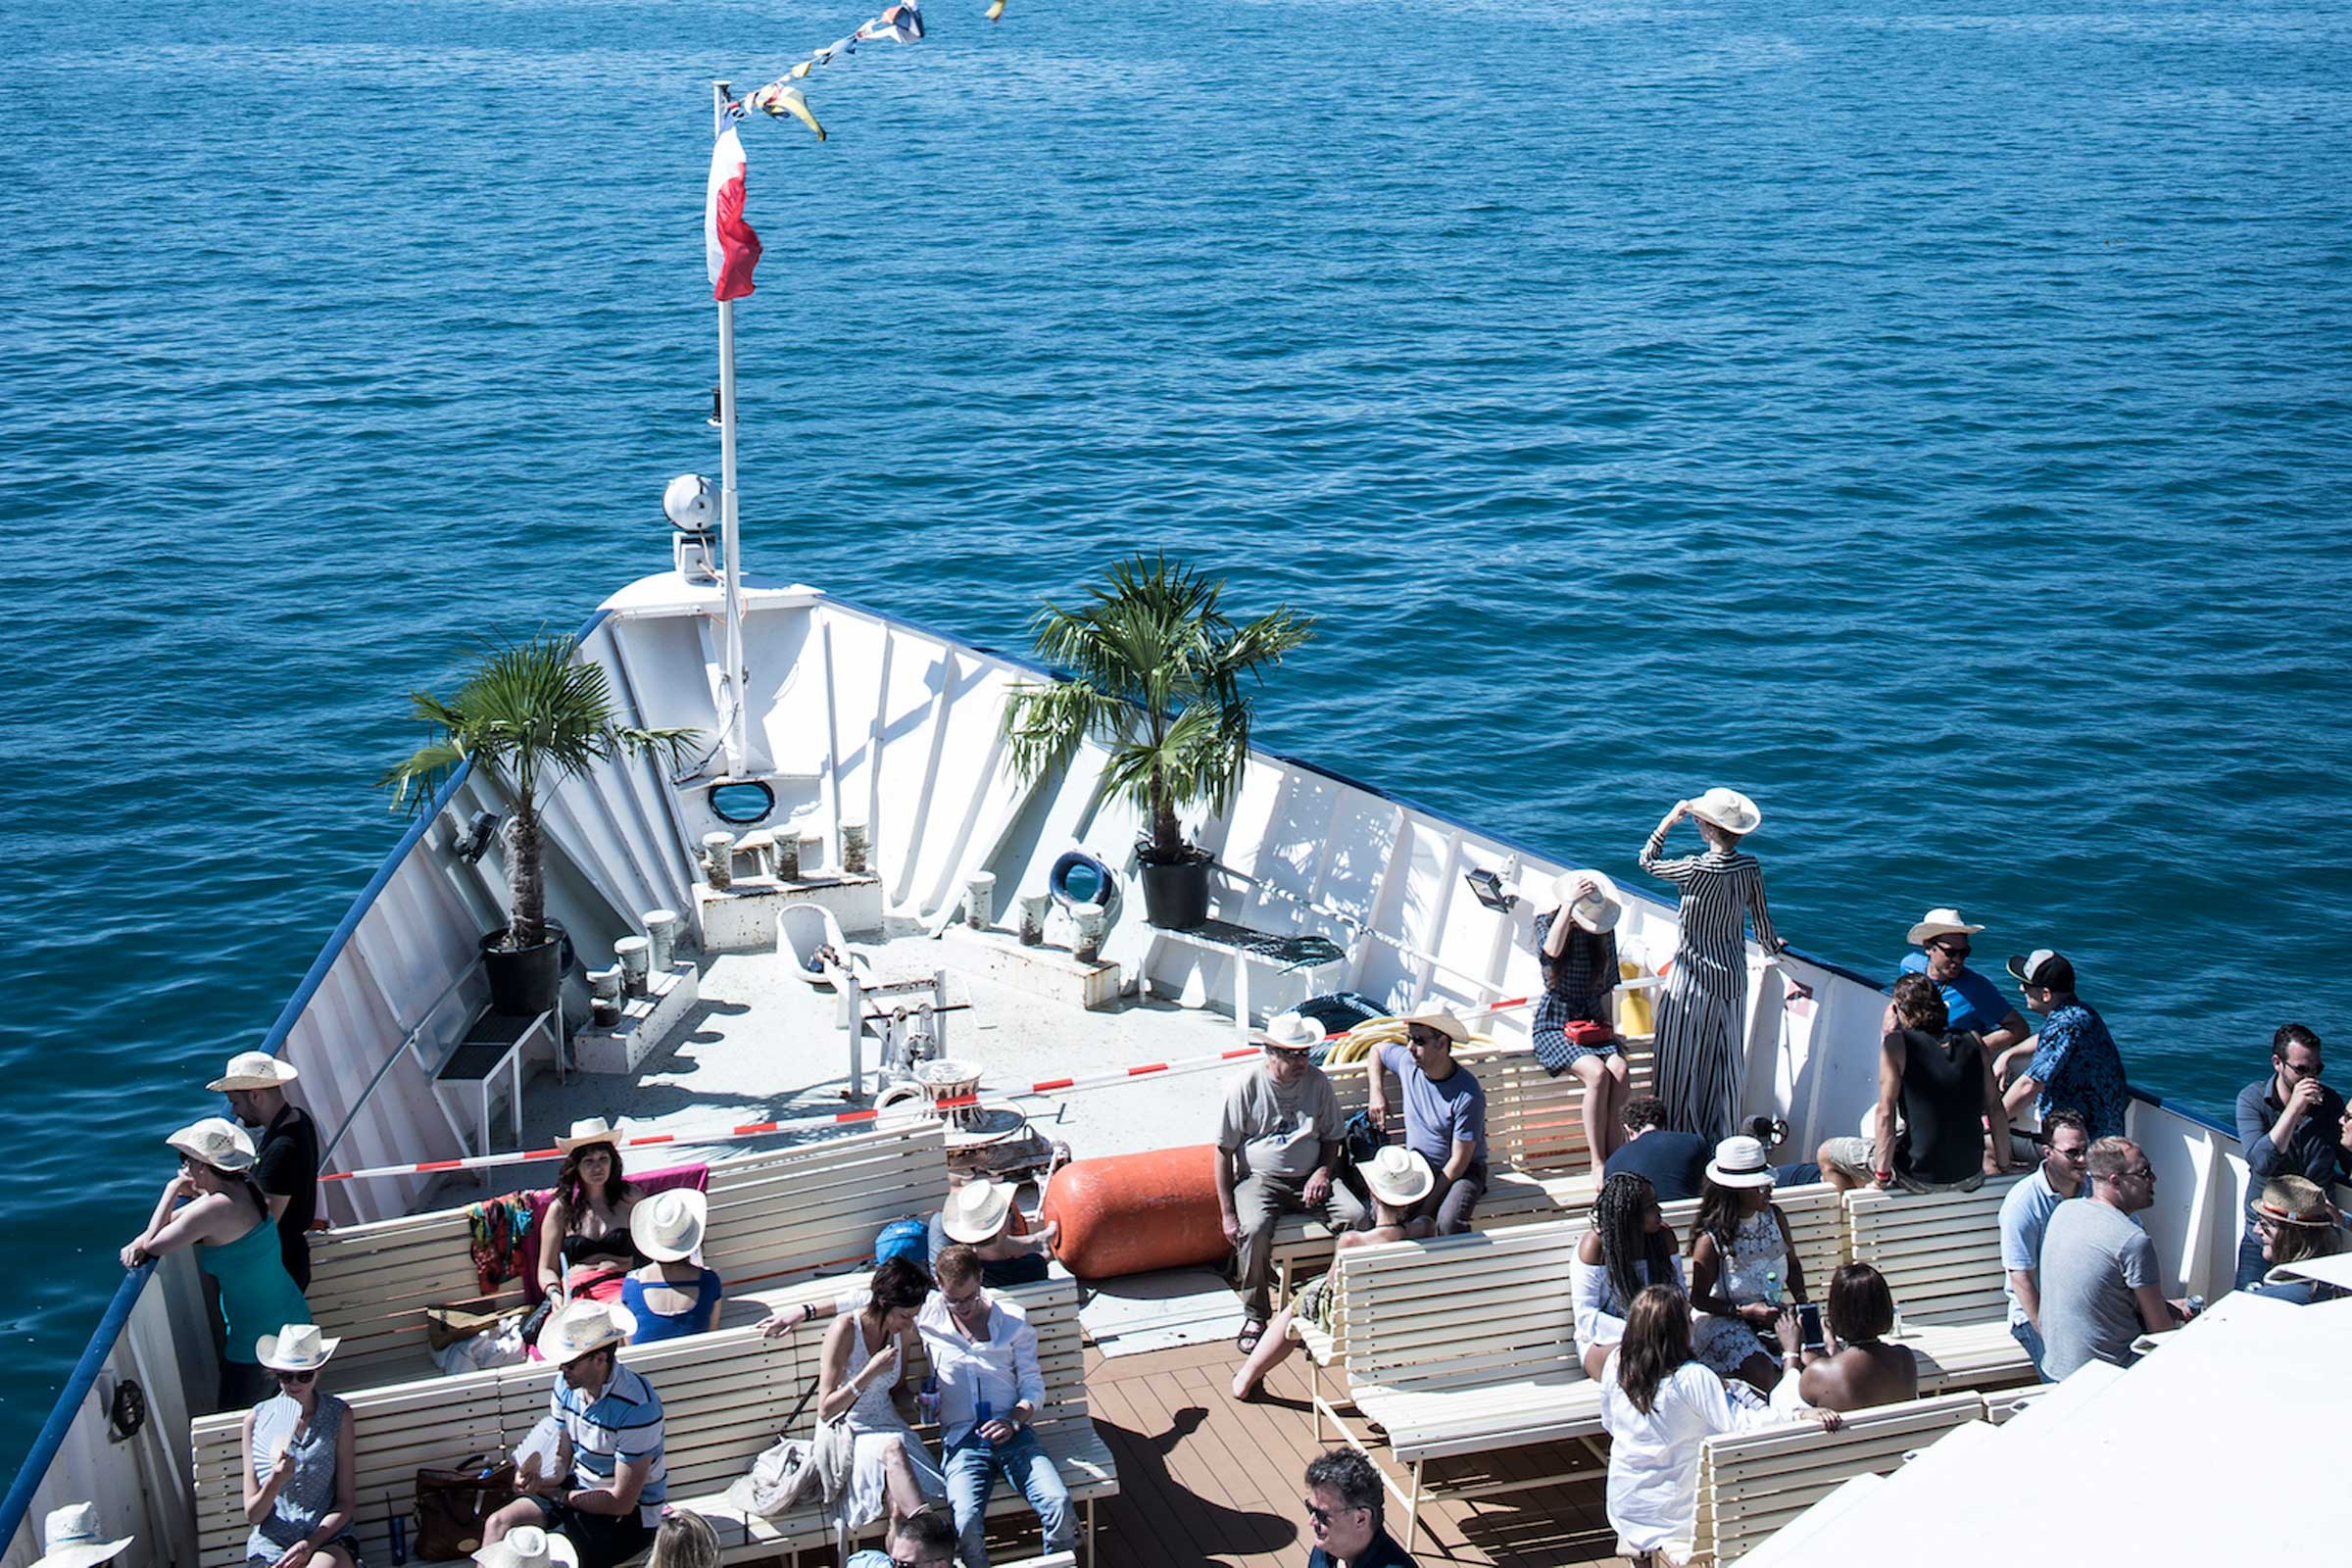 People seated on bench seating in the prow of one of the jazz boats at Montreaux Jazz Festival